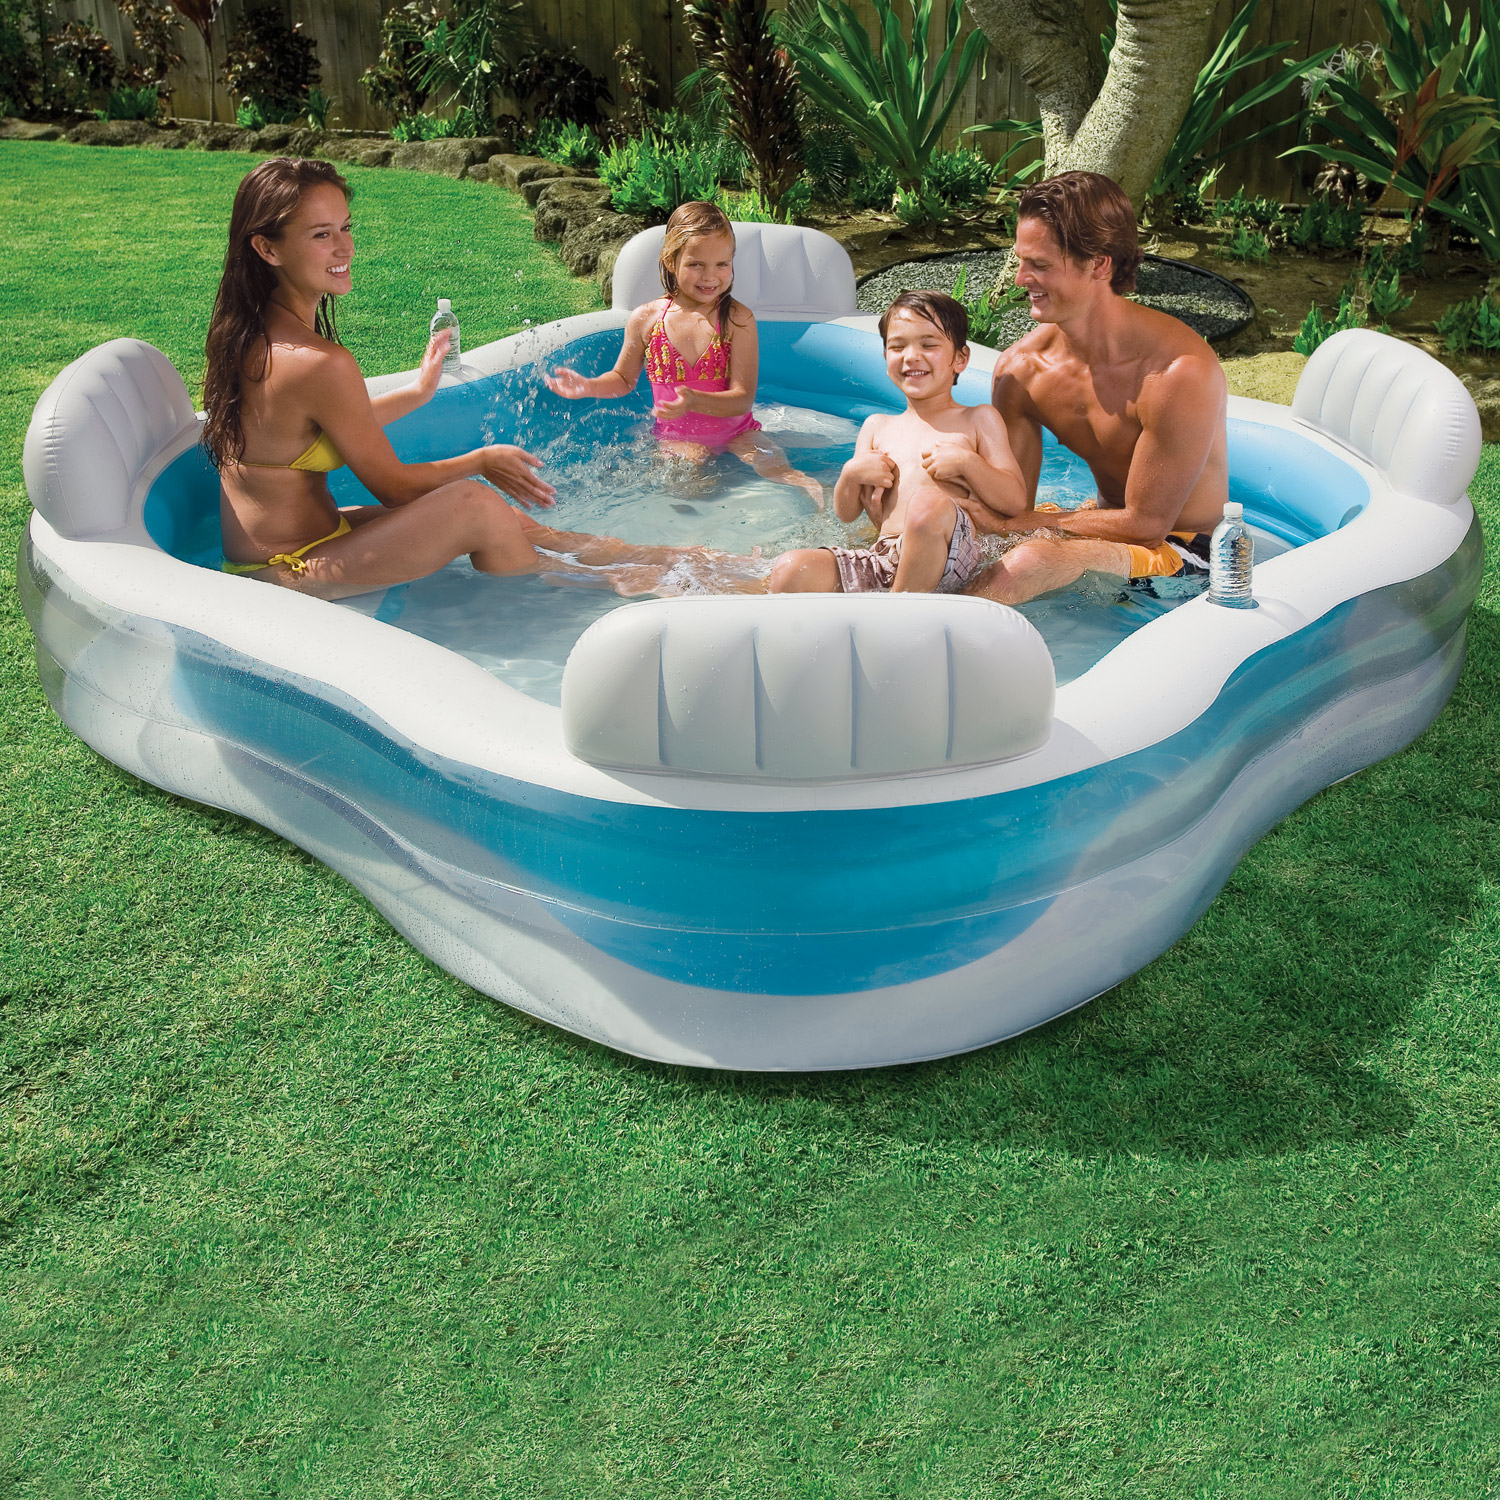 intex planschbecken pool kinderpool schwimmbad swimmingpool familienpool family ebay. Black Bedroom Furniture Sets. Home Design Ideas